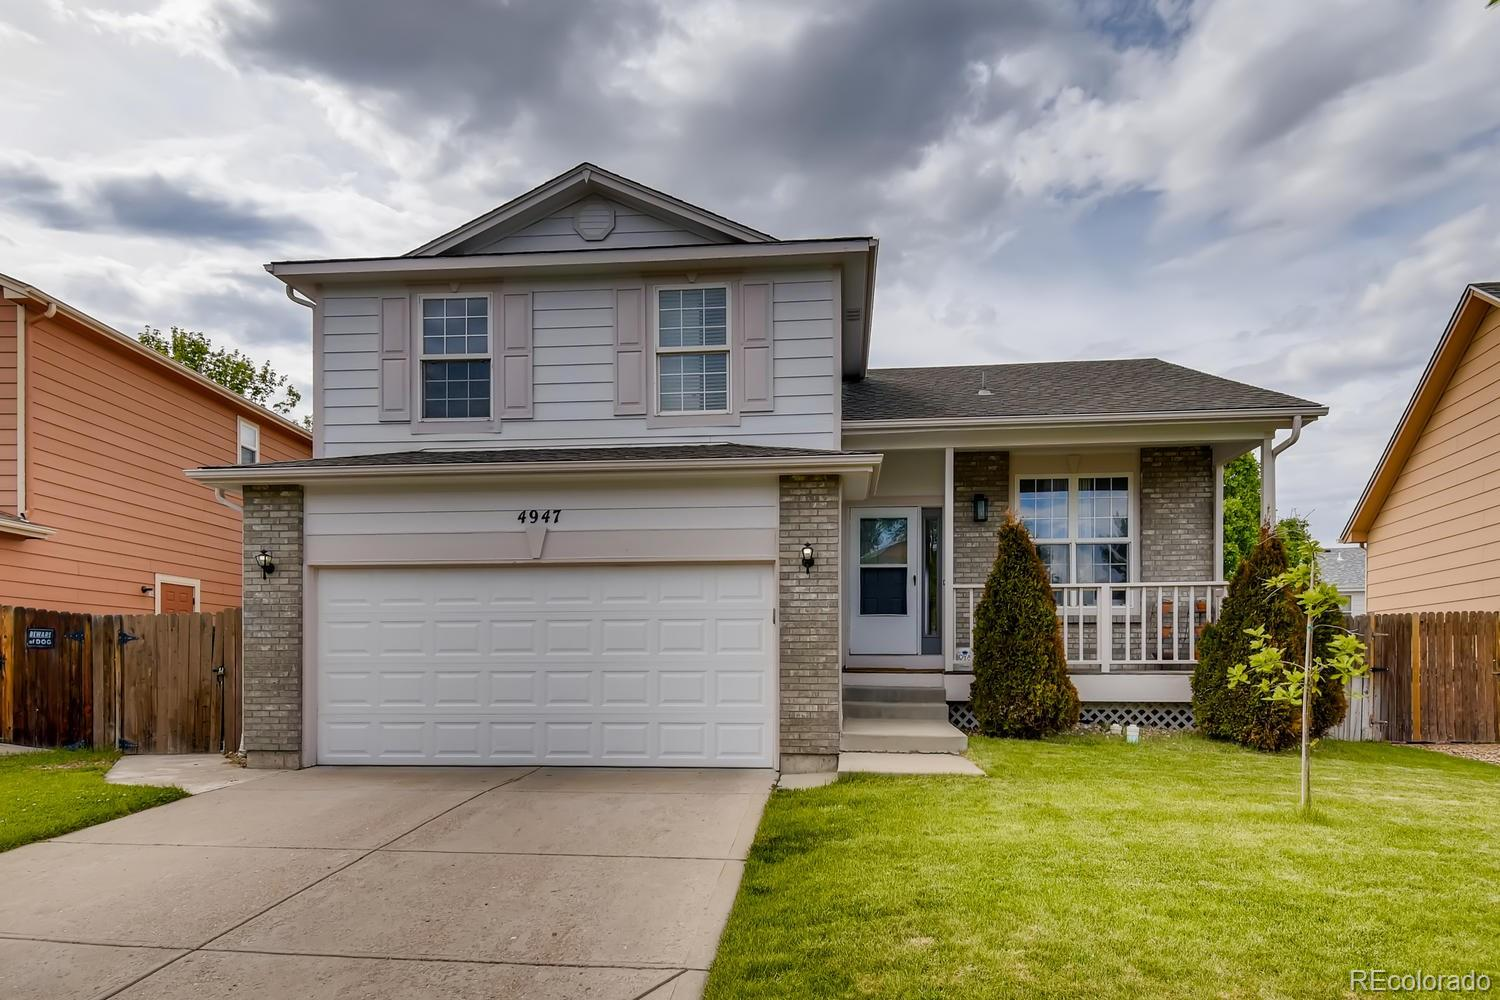 Welcoming from the moment you arrive.  This lovely split level in Gateway Village features 4 beds (3 up / 1 bsmt), 3.5 baths, living and family rooms, kitchen, finished basement and 2 car attached garage.  Pride of ownership shines throughout.  The finished basement is perfect for overnight guests or that teen wanting their own space.  The open floorplan is great for entertaining.  Enjoy relaxing on the back patio in the spacious backyard or people watching from the covered from porch/deck.  Neutral tones make it easy to picture yourself calling in this one home.  The central air and energy efficient furnace keep this home comfortable all year long.  Close to dining, shopping, entertainment and other amenities.  Don't miss your opportunity. Welcome home!